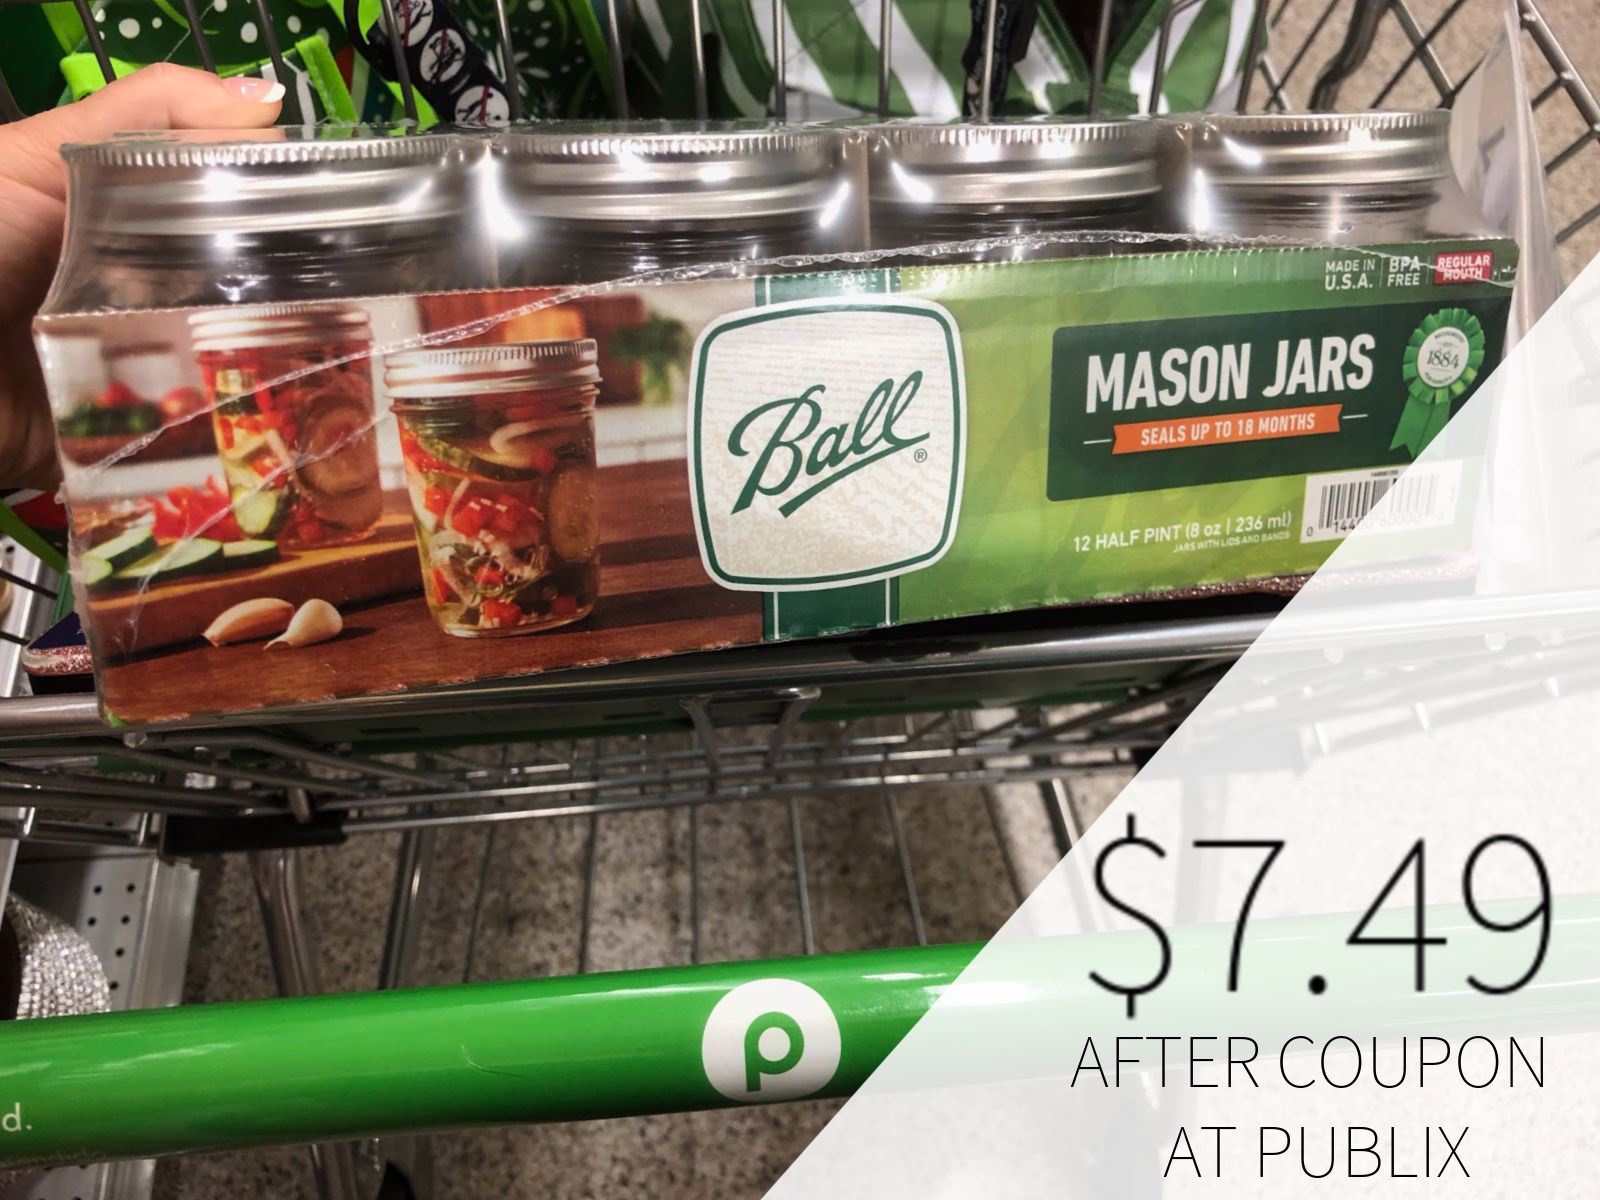 New Ball Jars Coupon – 12 Packs As Low As $7.49 At Publix on I Heart Publix